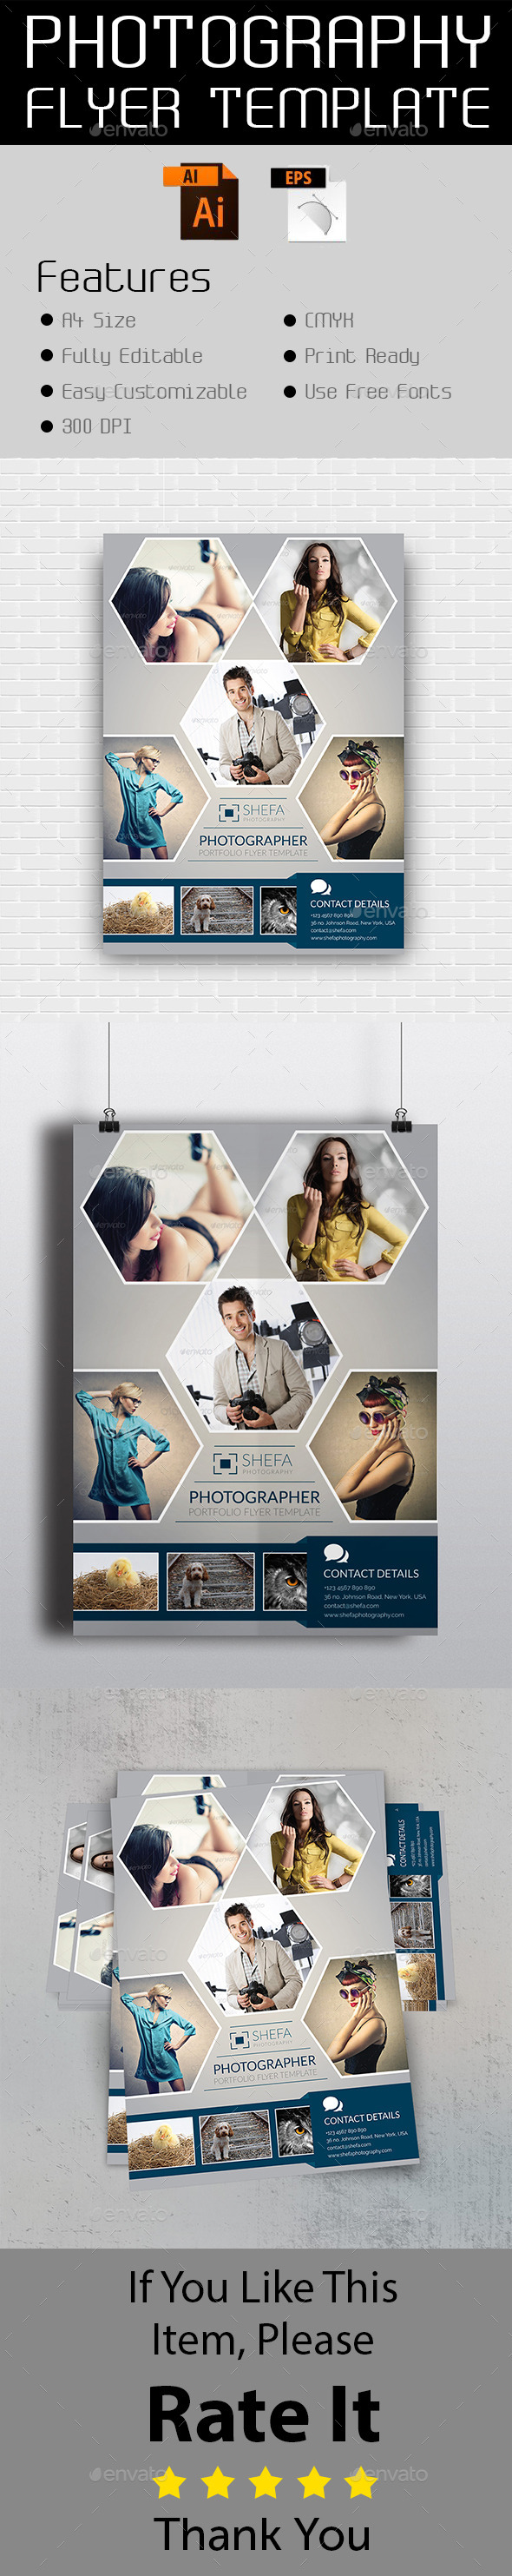 GraphicRiver Photography Flyer Template 10865913